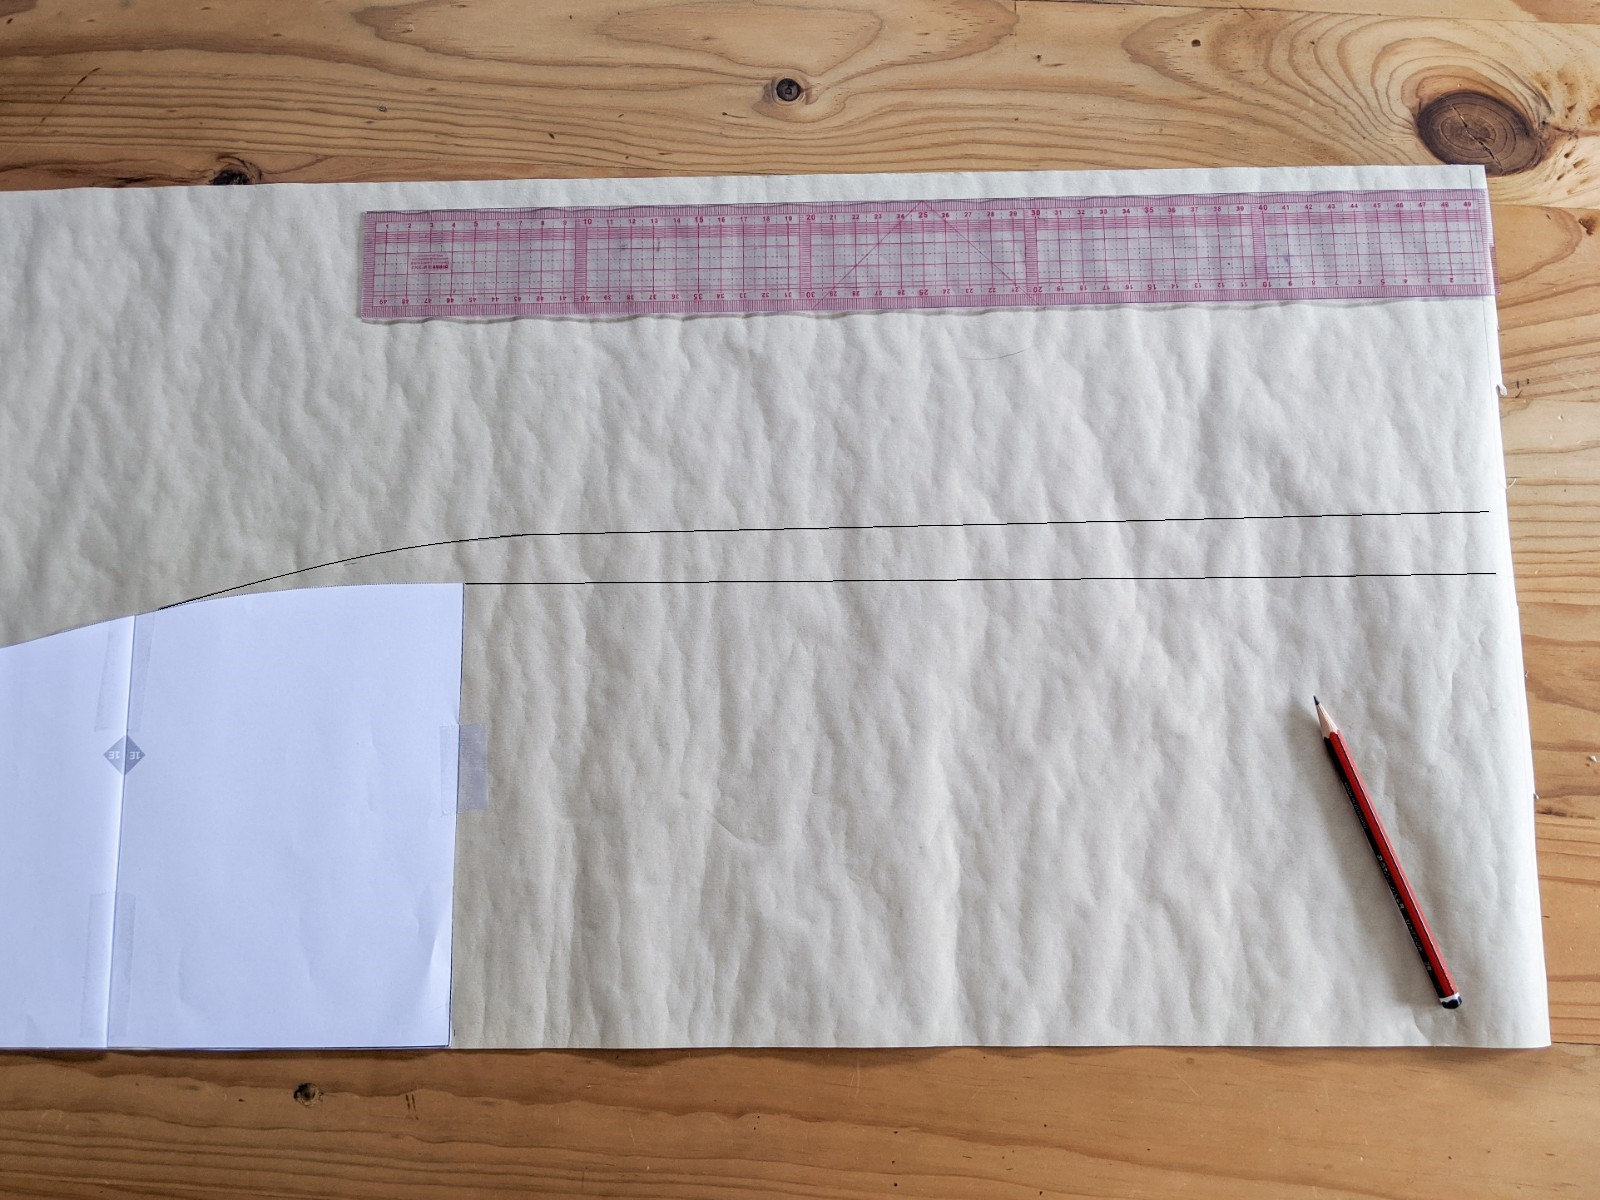 Draw a line, the length of your desired skirt length, perpendicular from the end of the pattern piece.